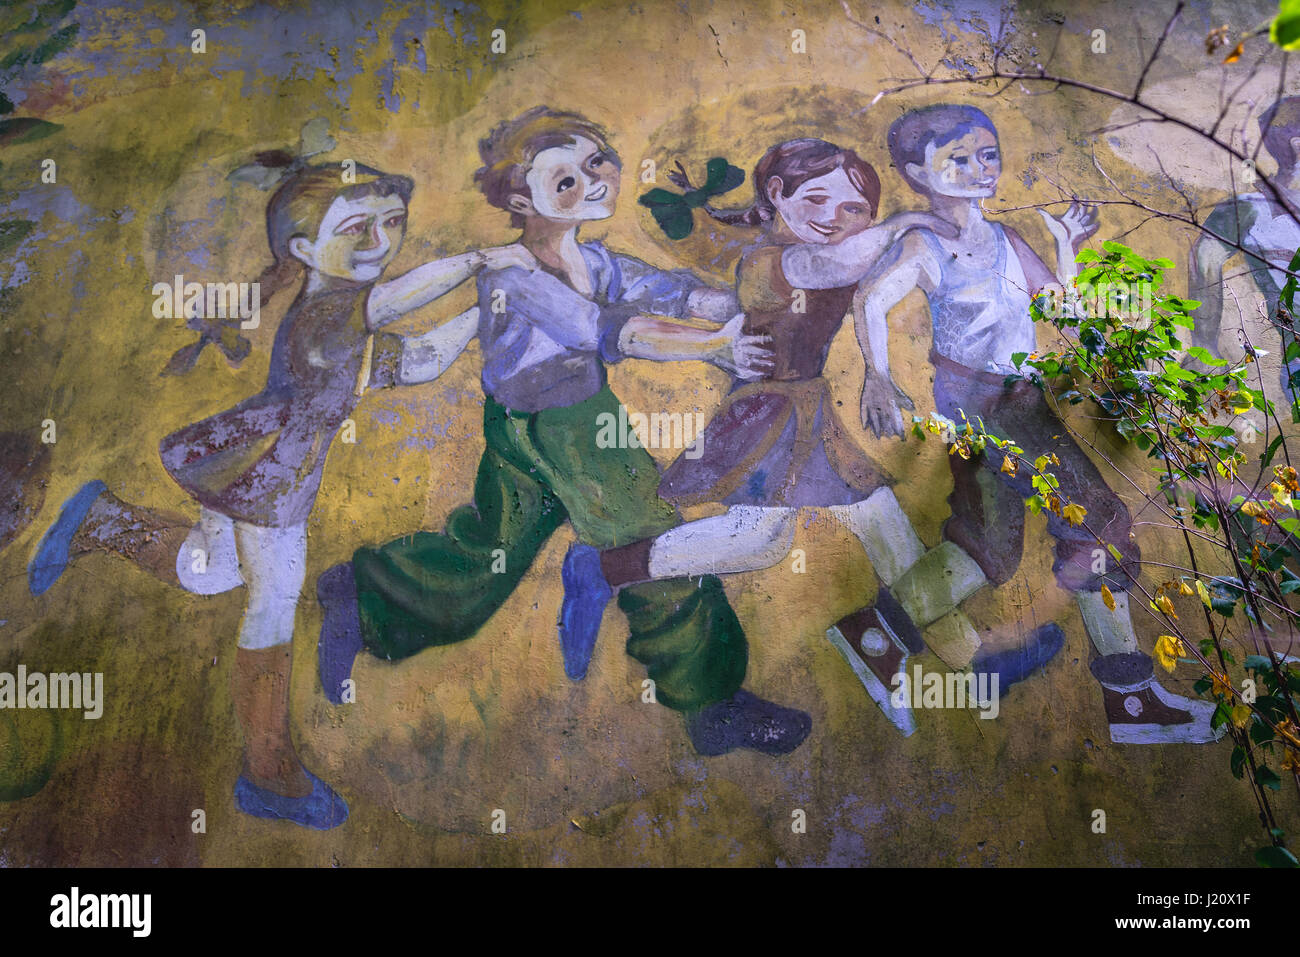 drawing on a kindergarten wall in chernobyl 2 military base stock